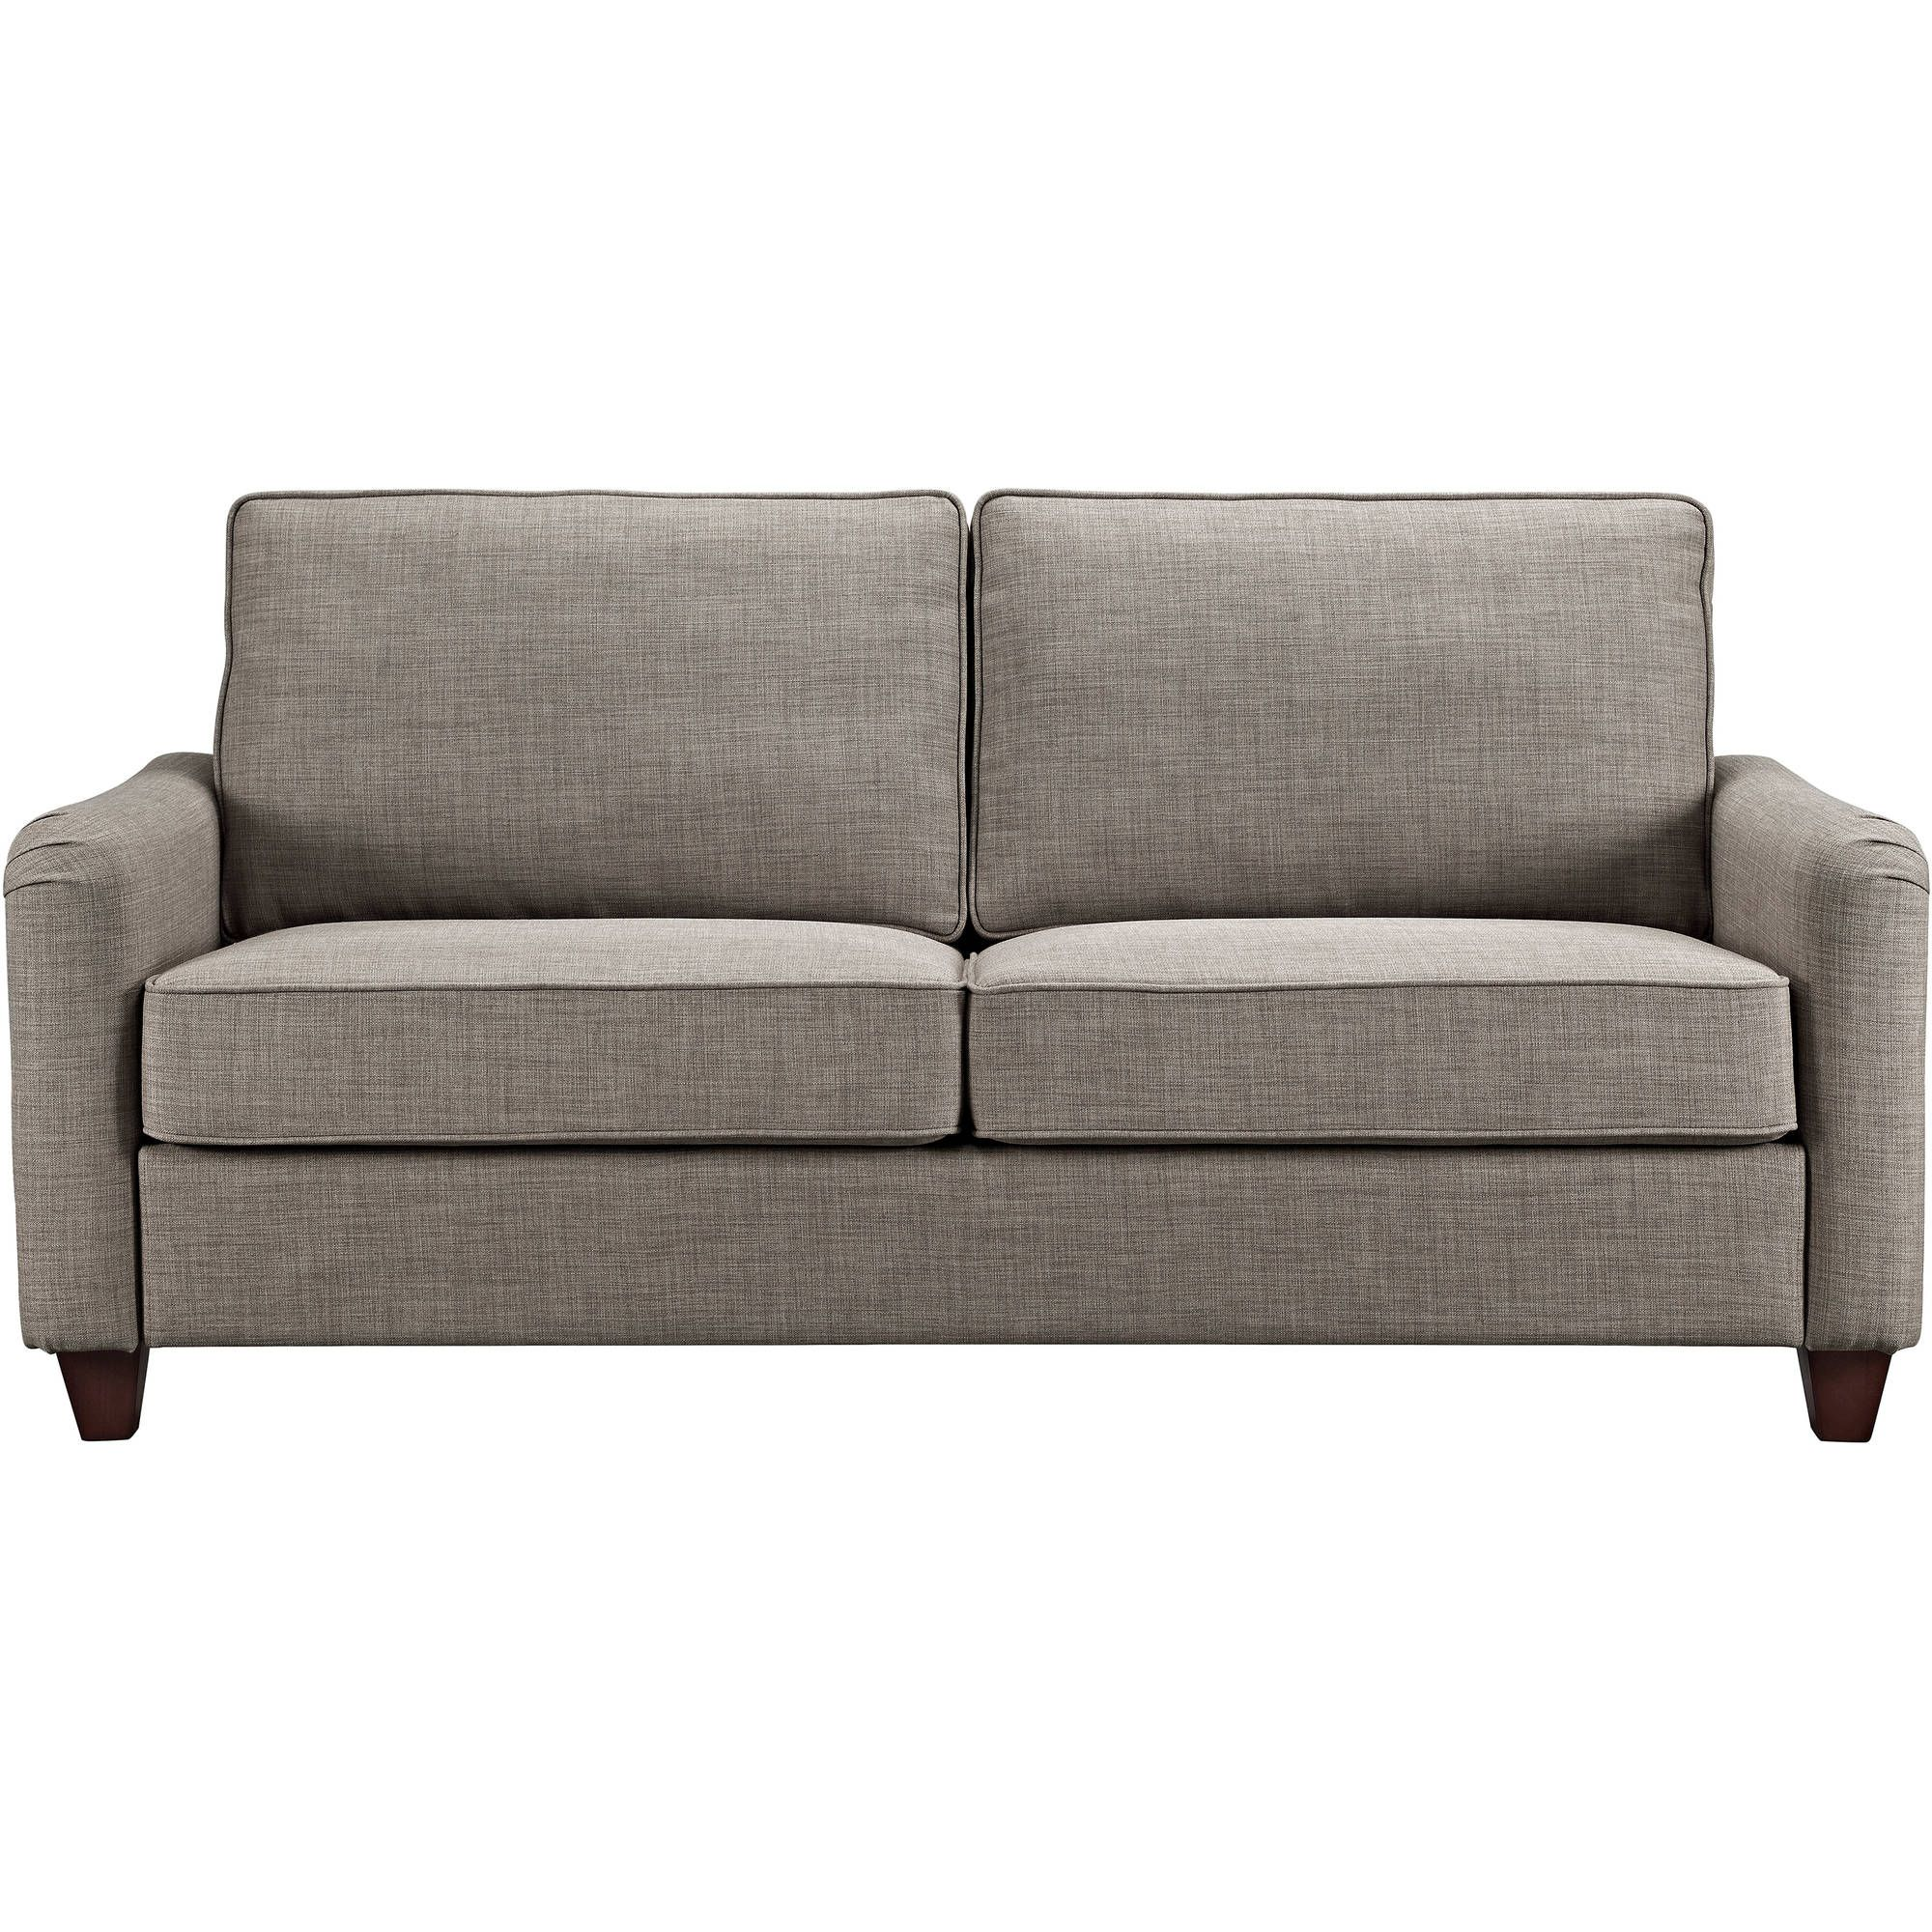 Wonderful Living Room Couches Goodworksfurniture In 2020 Cheap Bedroom Furniture Sets Cheap Bedroom Furniture Cheap Sofas